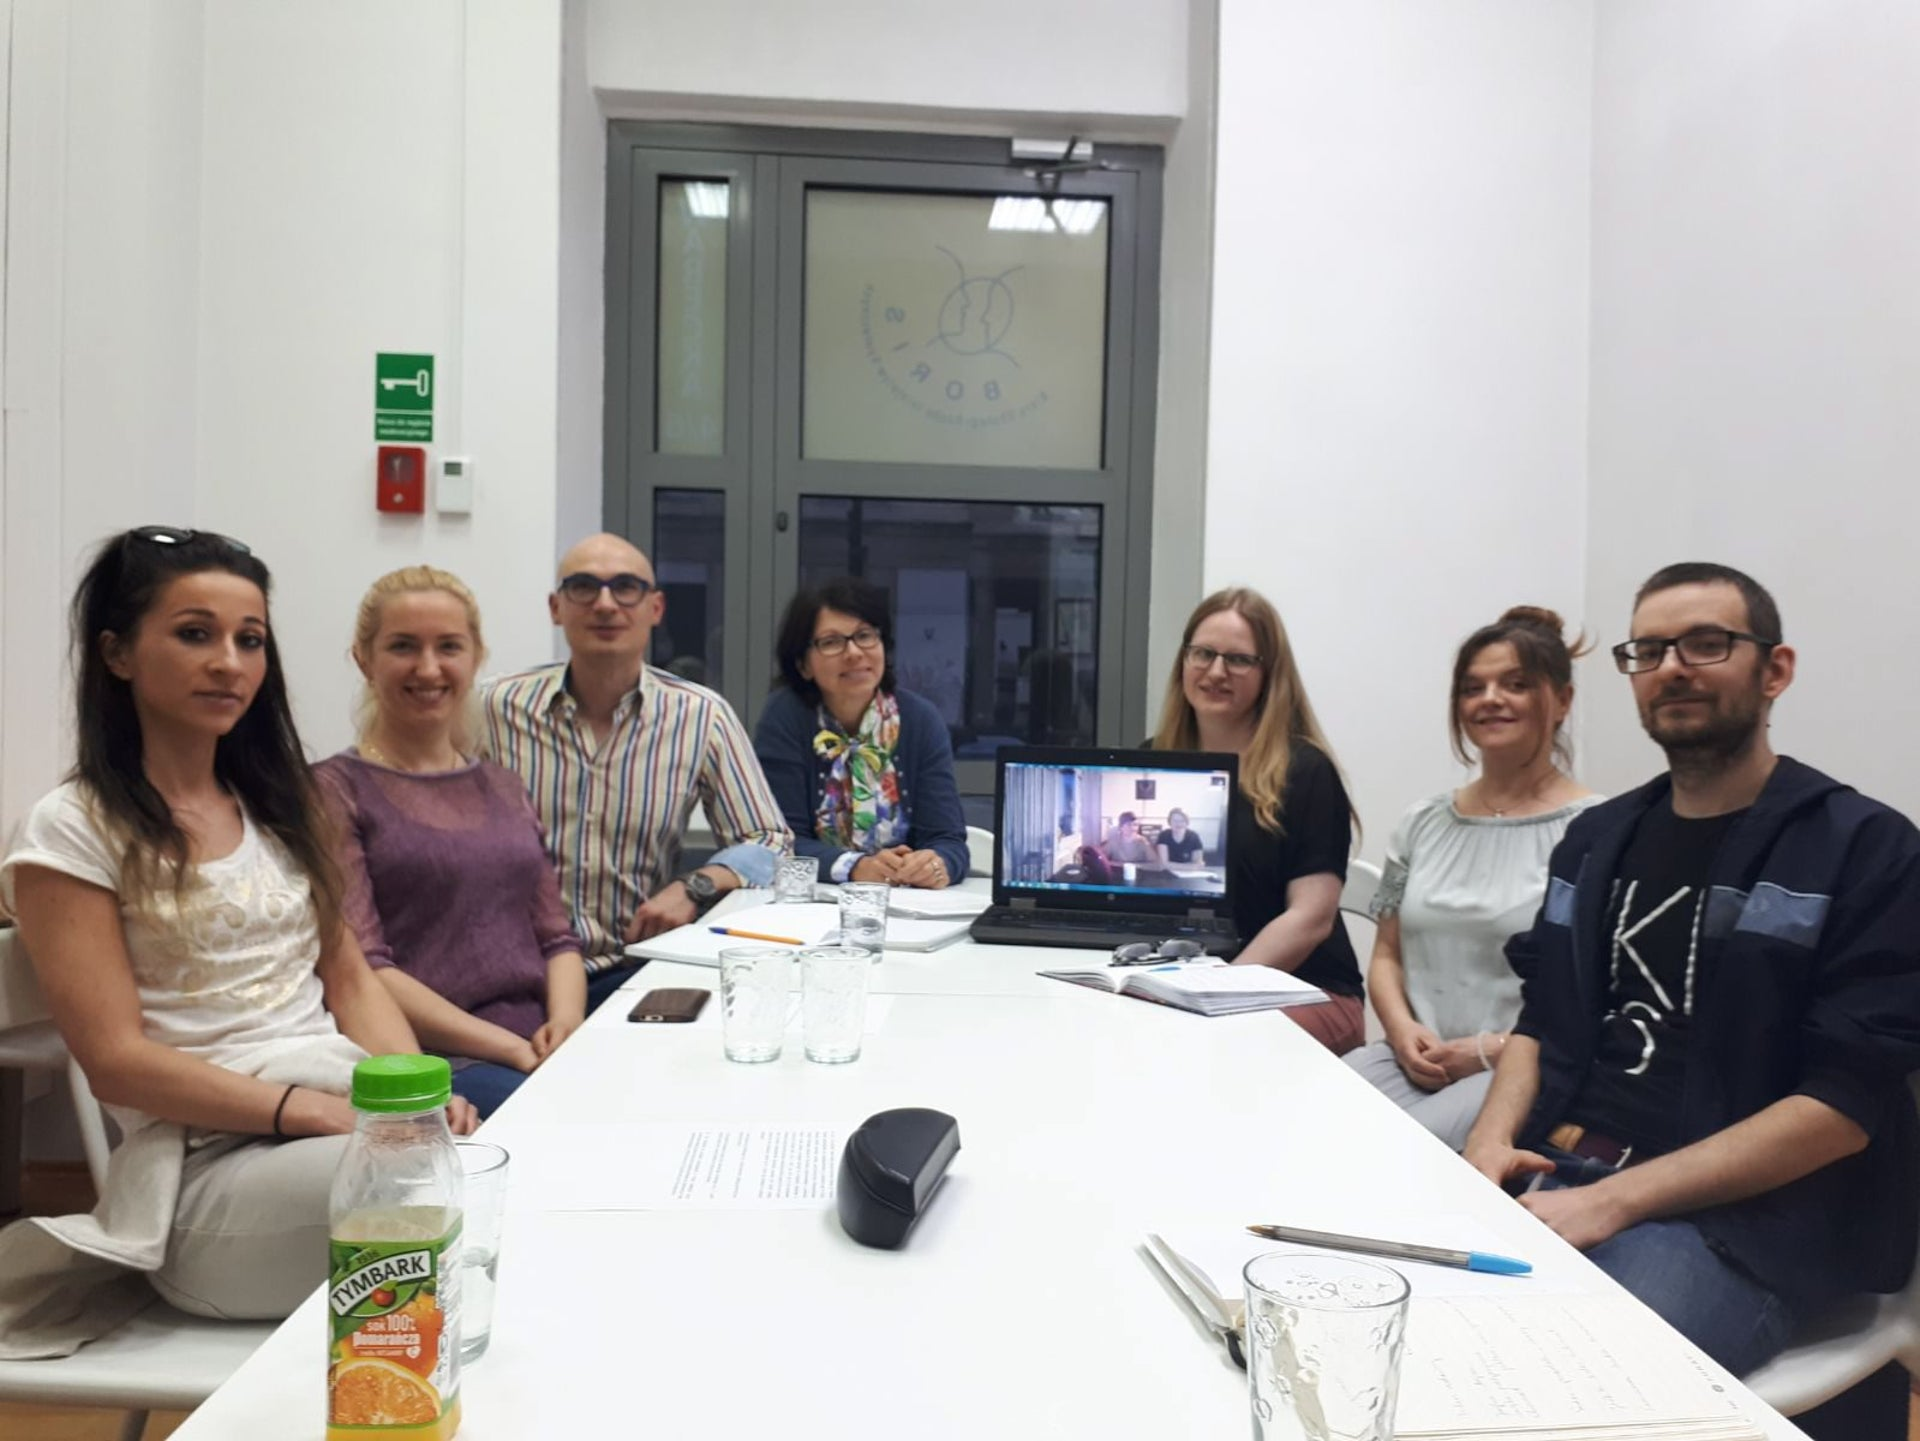 A conversion class run by the Progressive movement in Warsaw, with two people participating via Skype from Lublin.